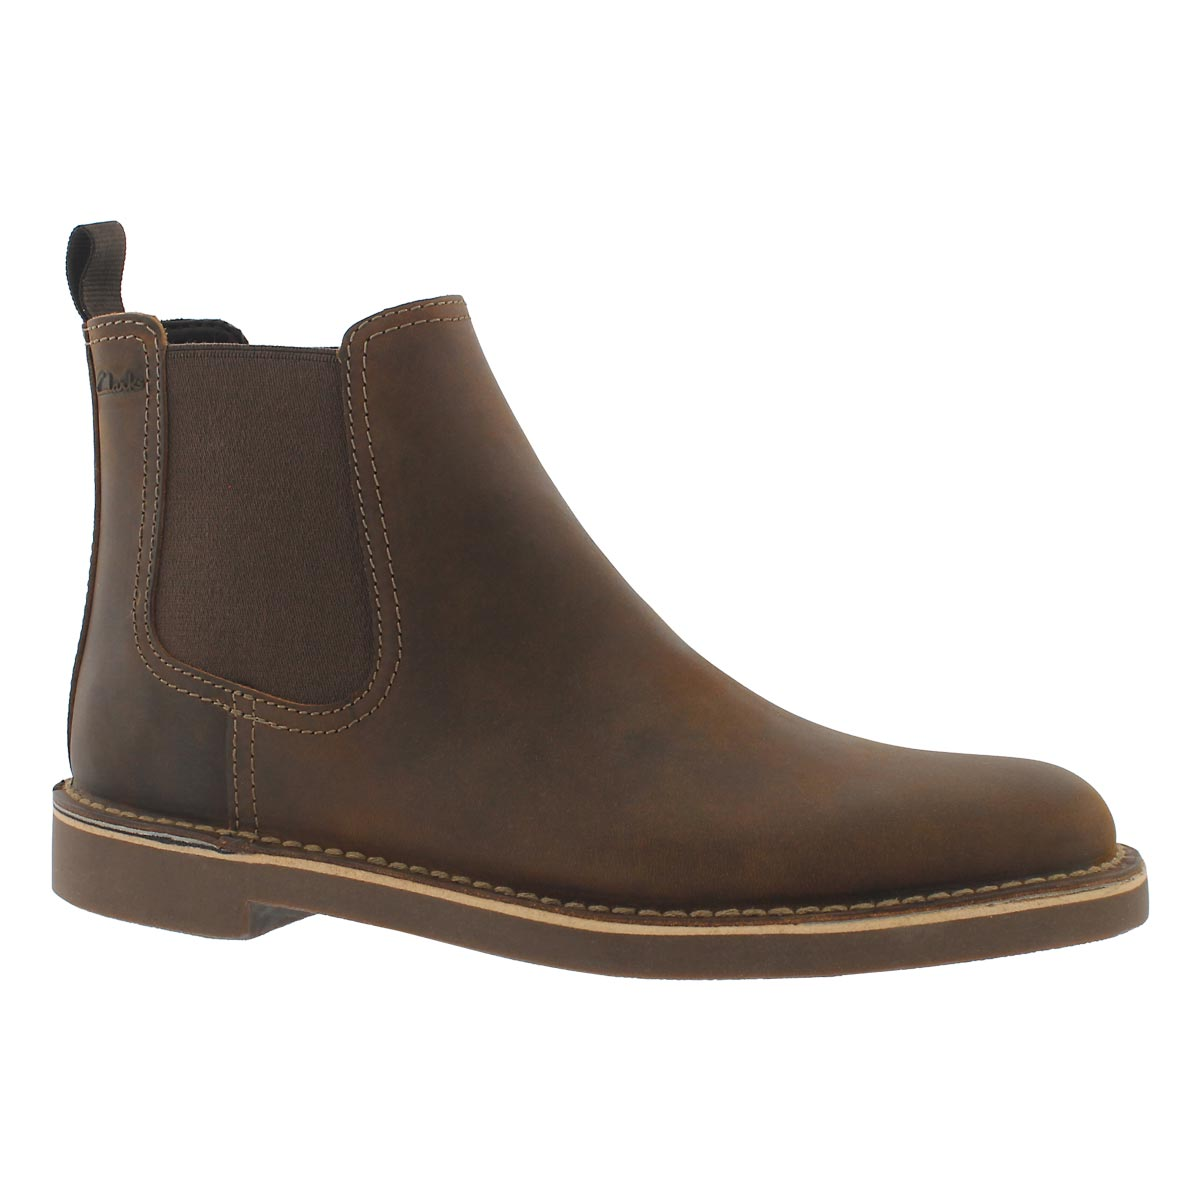 49ae7011985 Clarks Men's BUSHACRE HILL beeswax chelsea bo | Softmoc.com